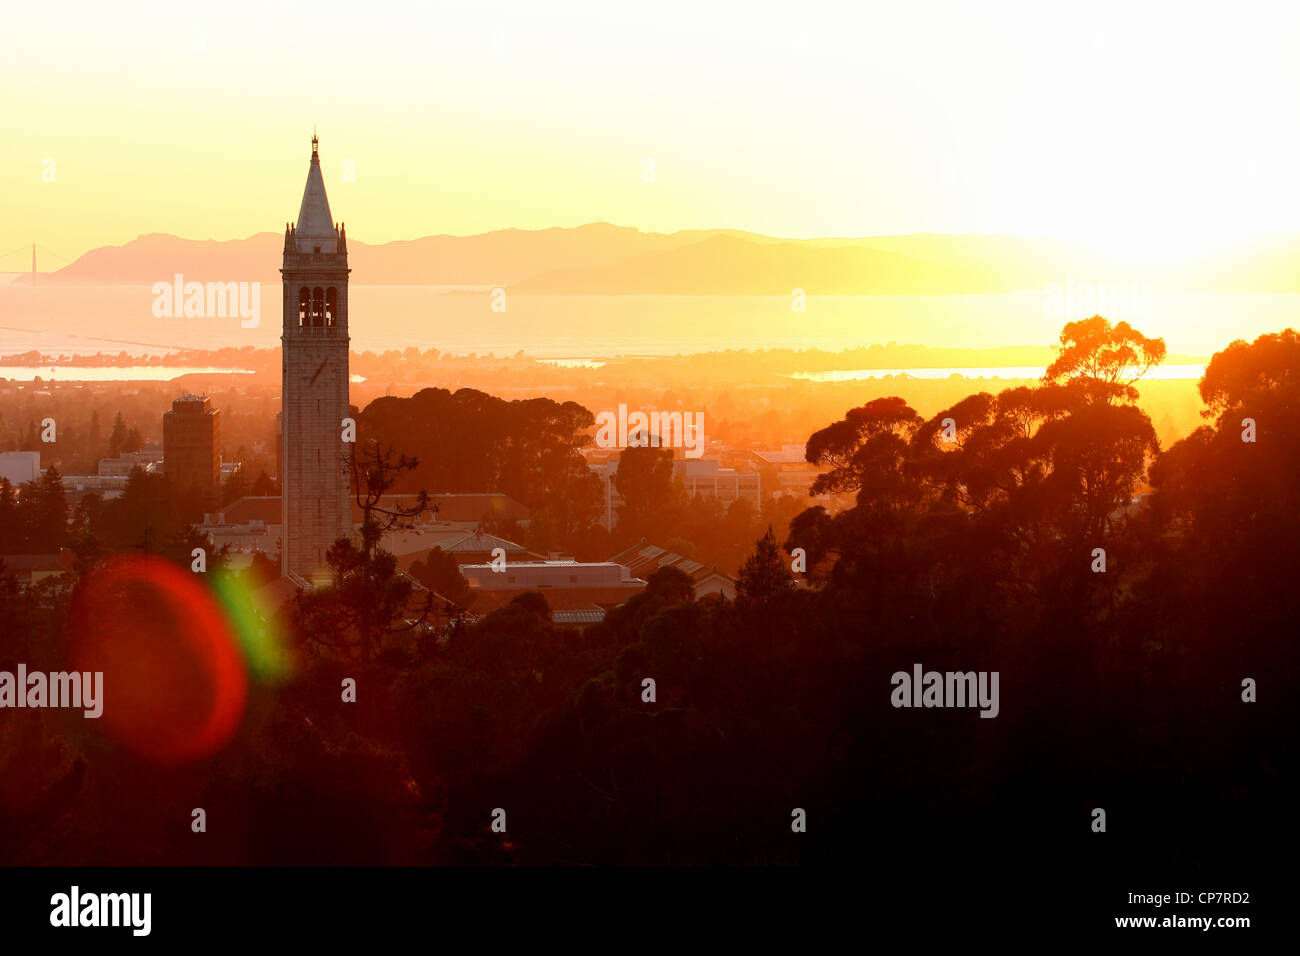 SATHER TOWER & BERKELEY BERKELEY CALIFORNIA USA 06 October 2011 - Stock Image